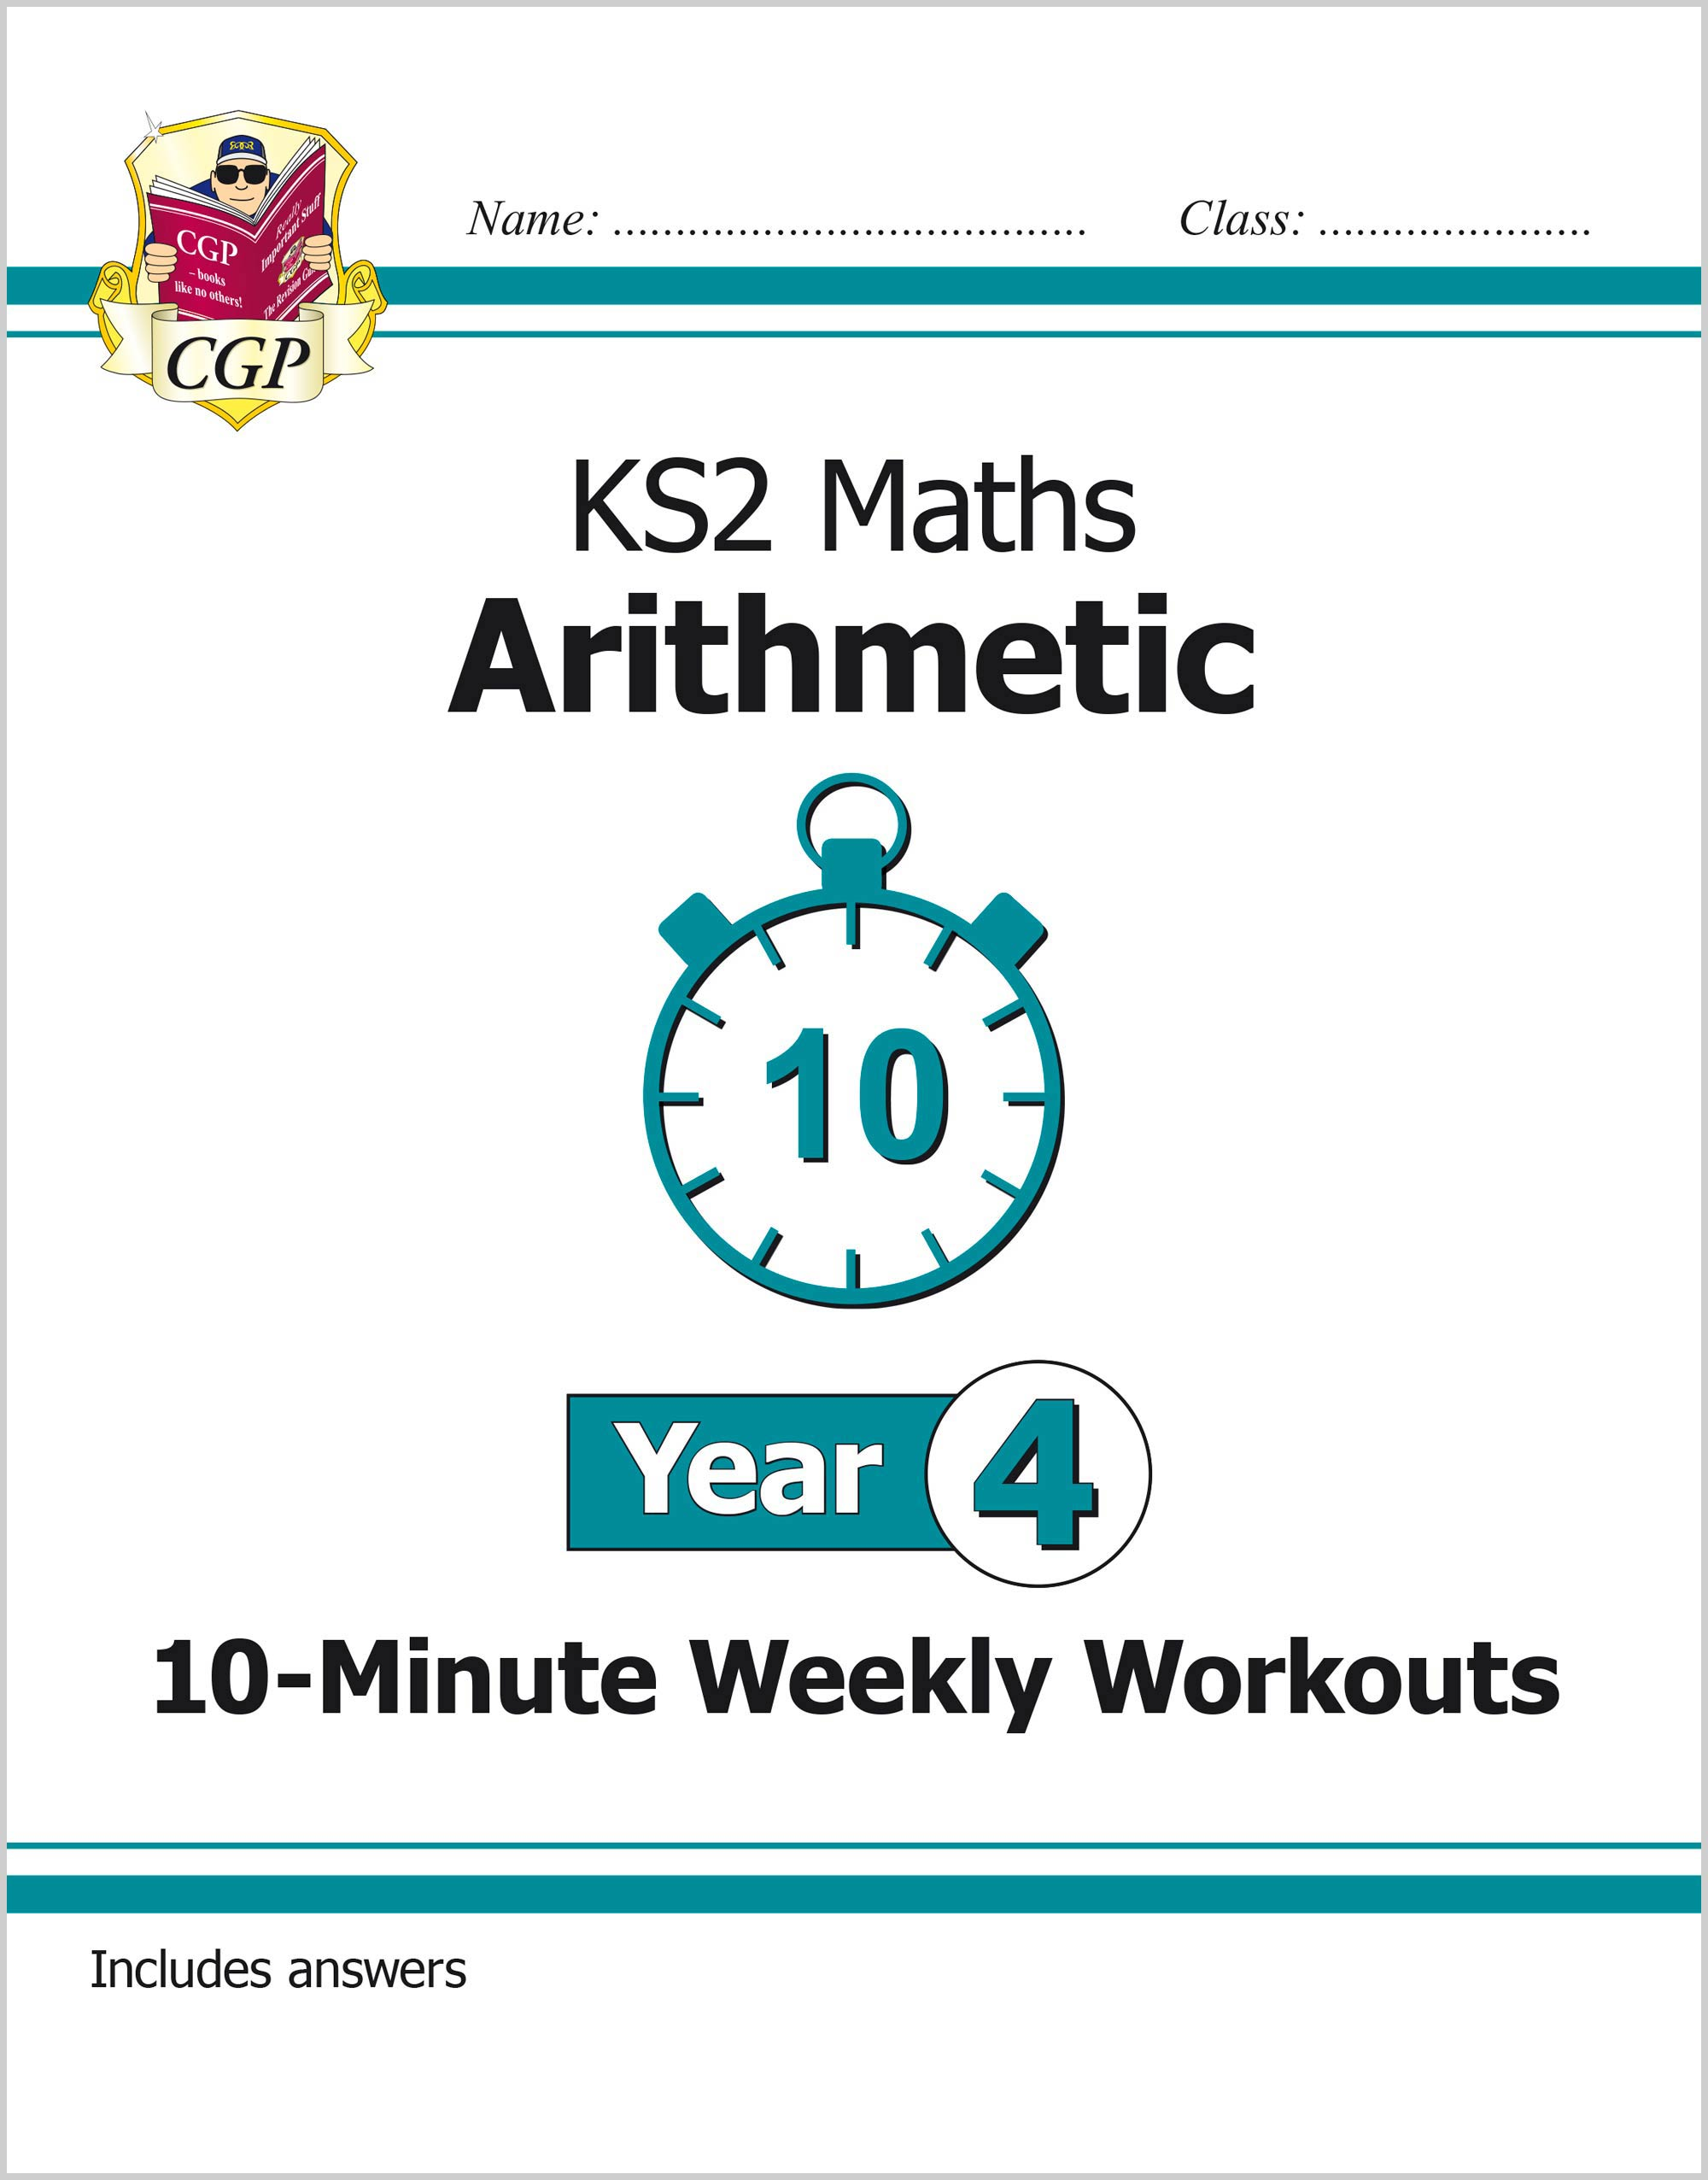 M4ARXW21 - New KS2 Maths 10-Minute Weekly Workouts: Arithmetic - Year 4